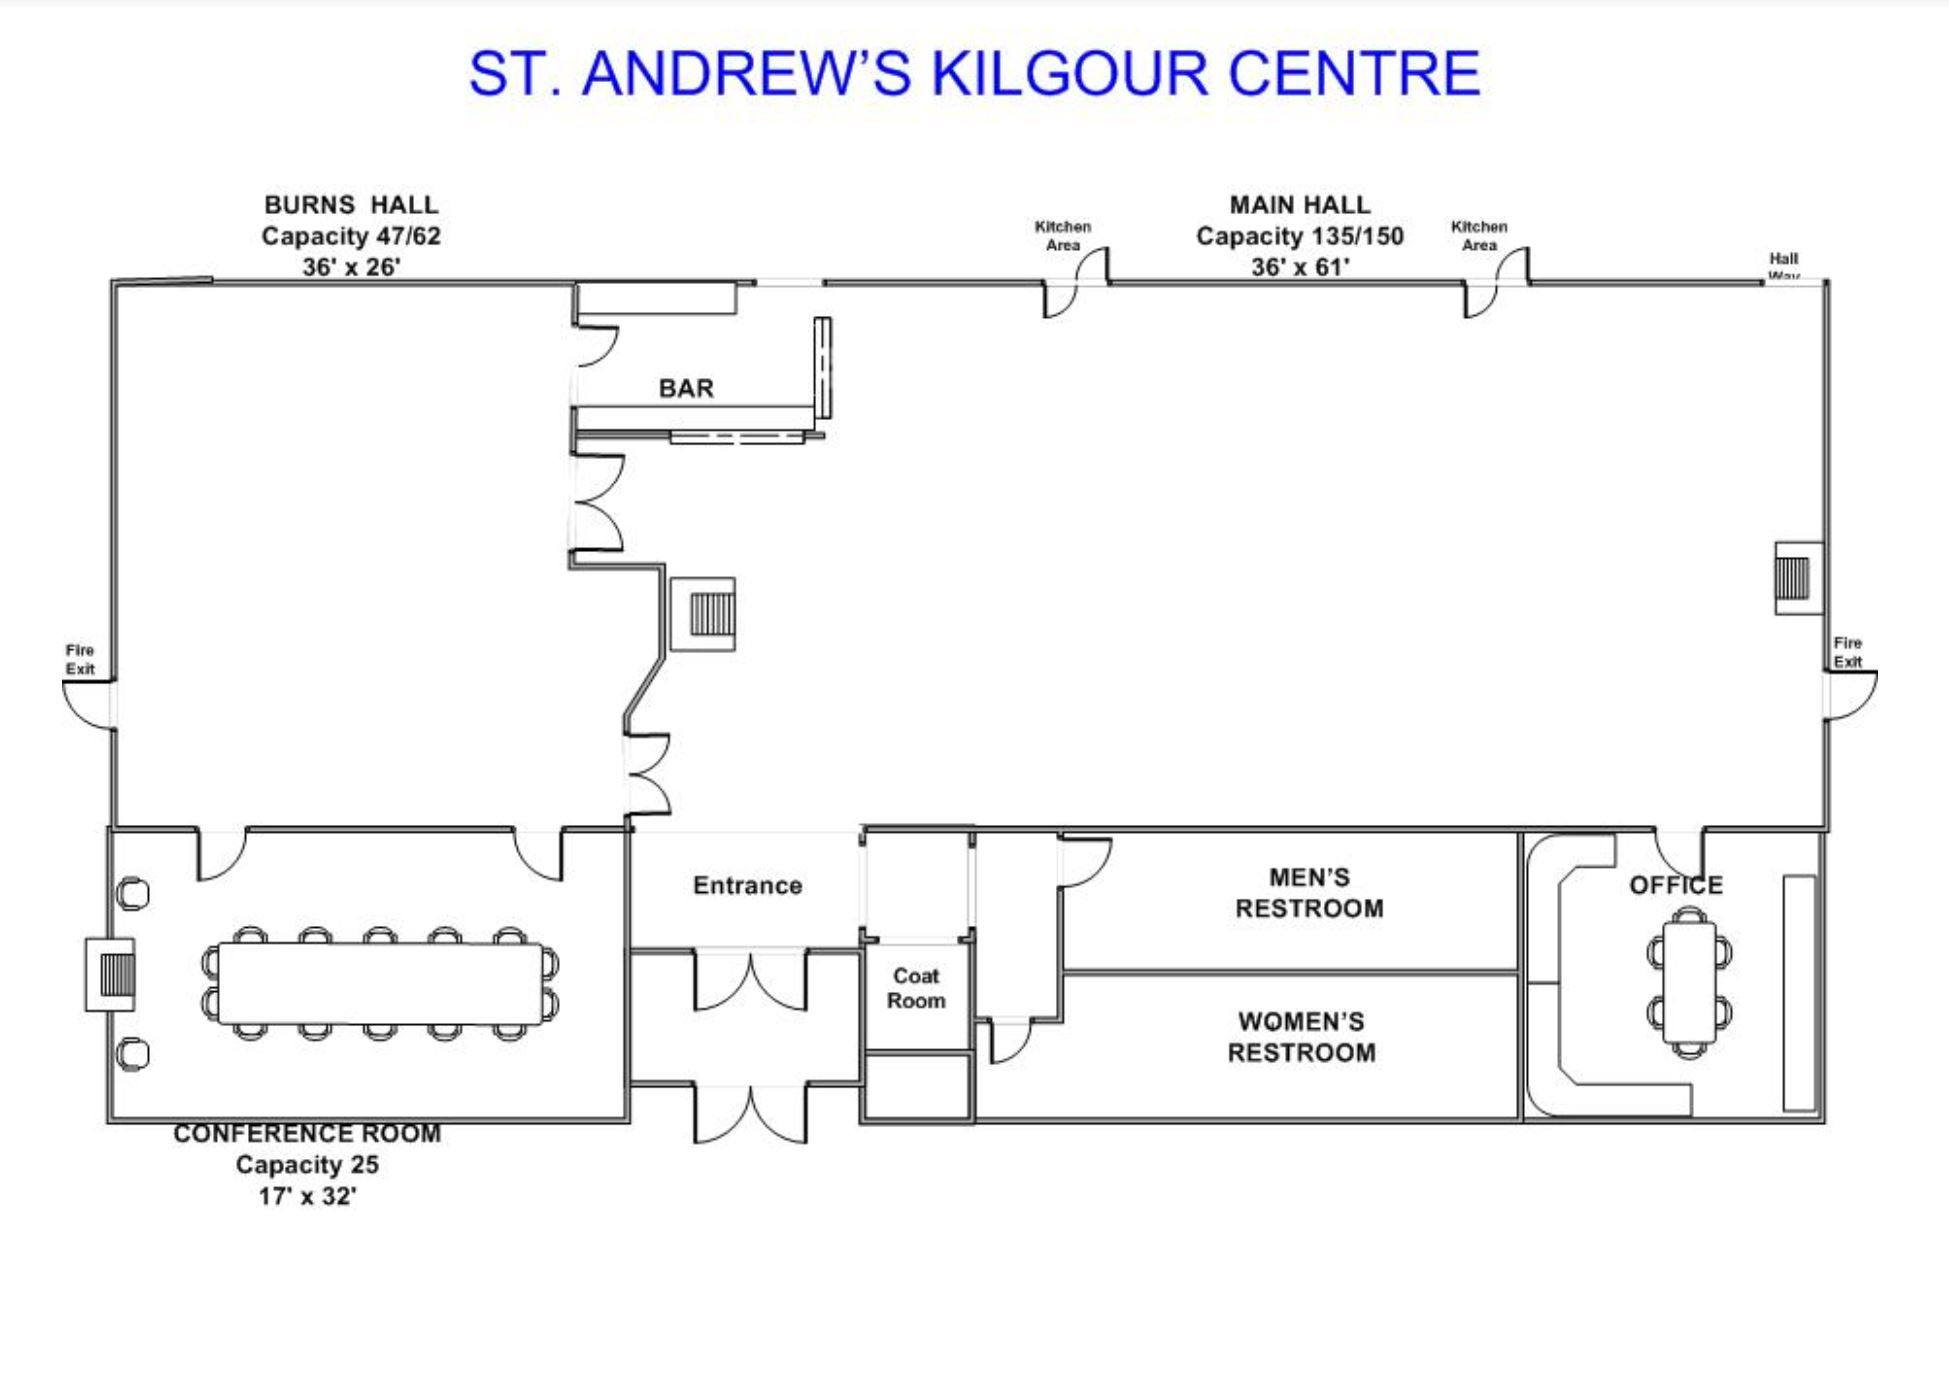 Kilgour Centre Floor Plan